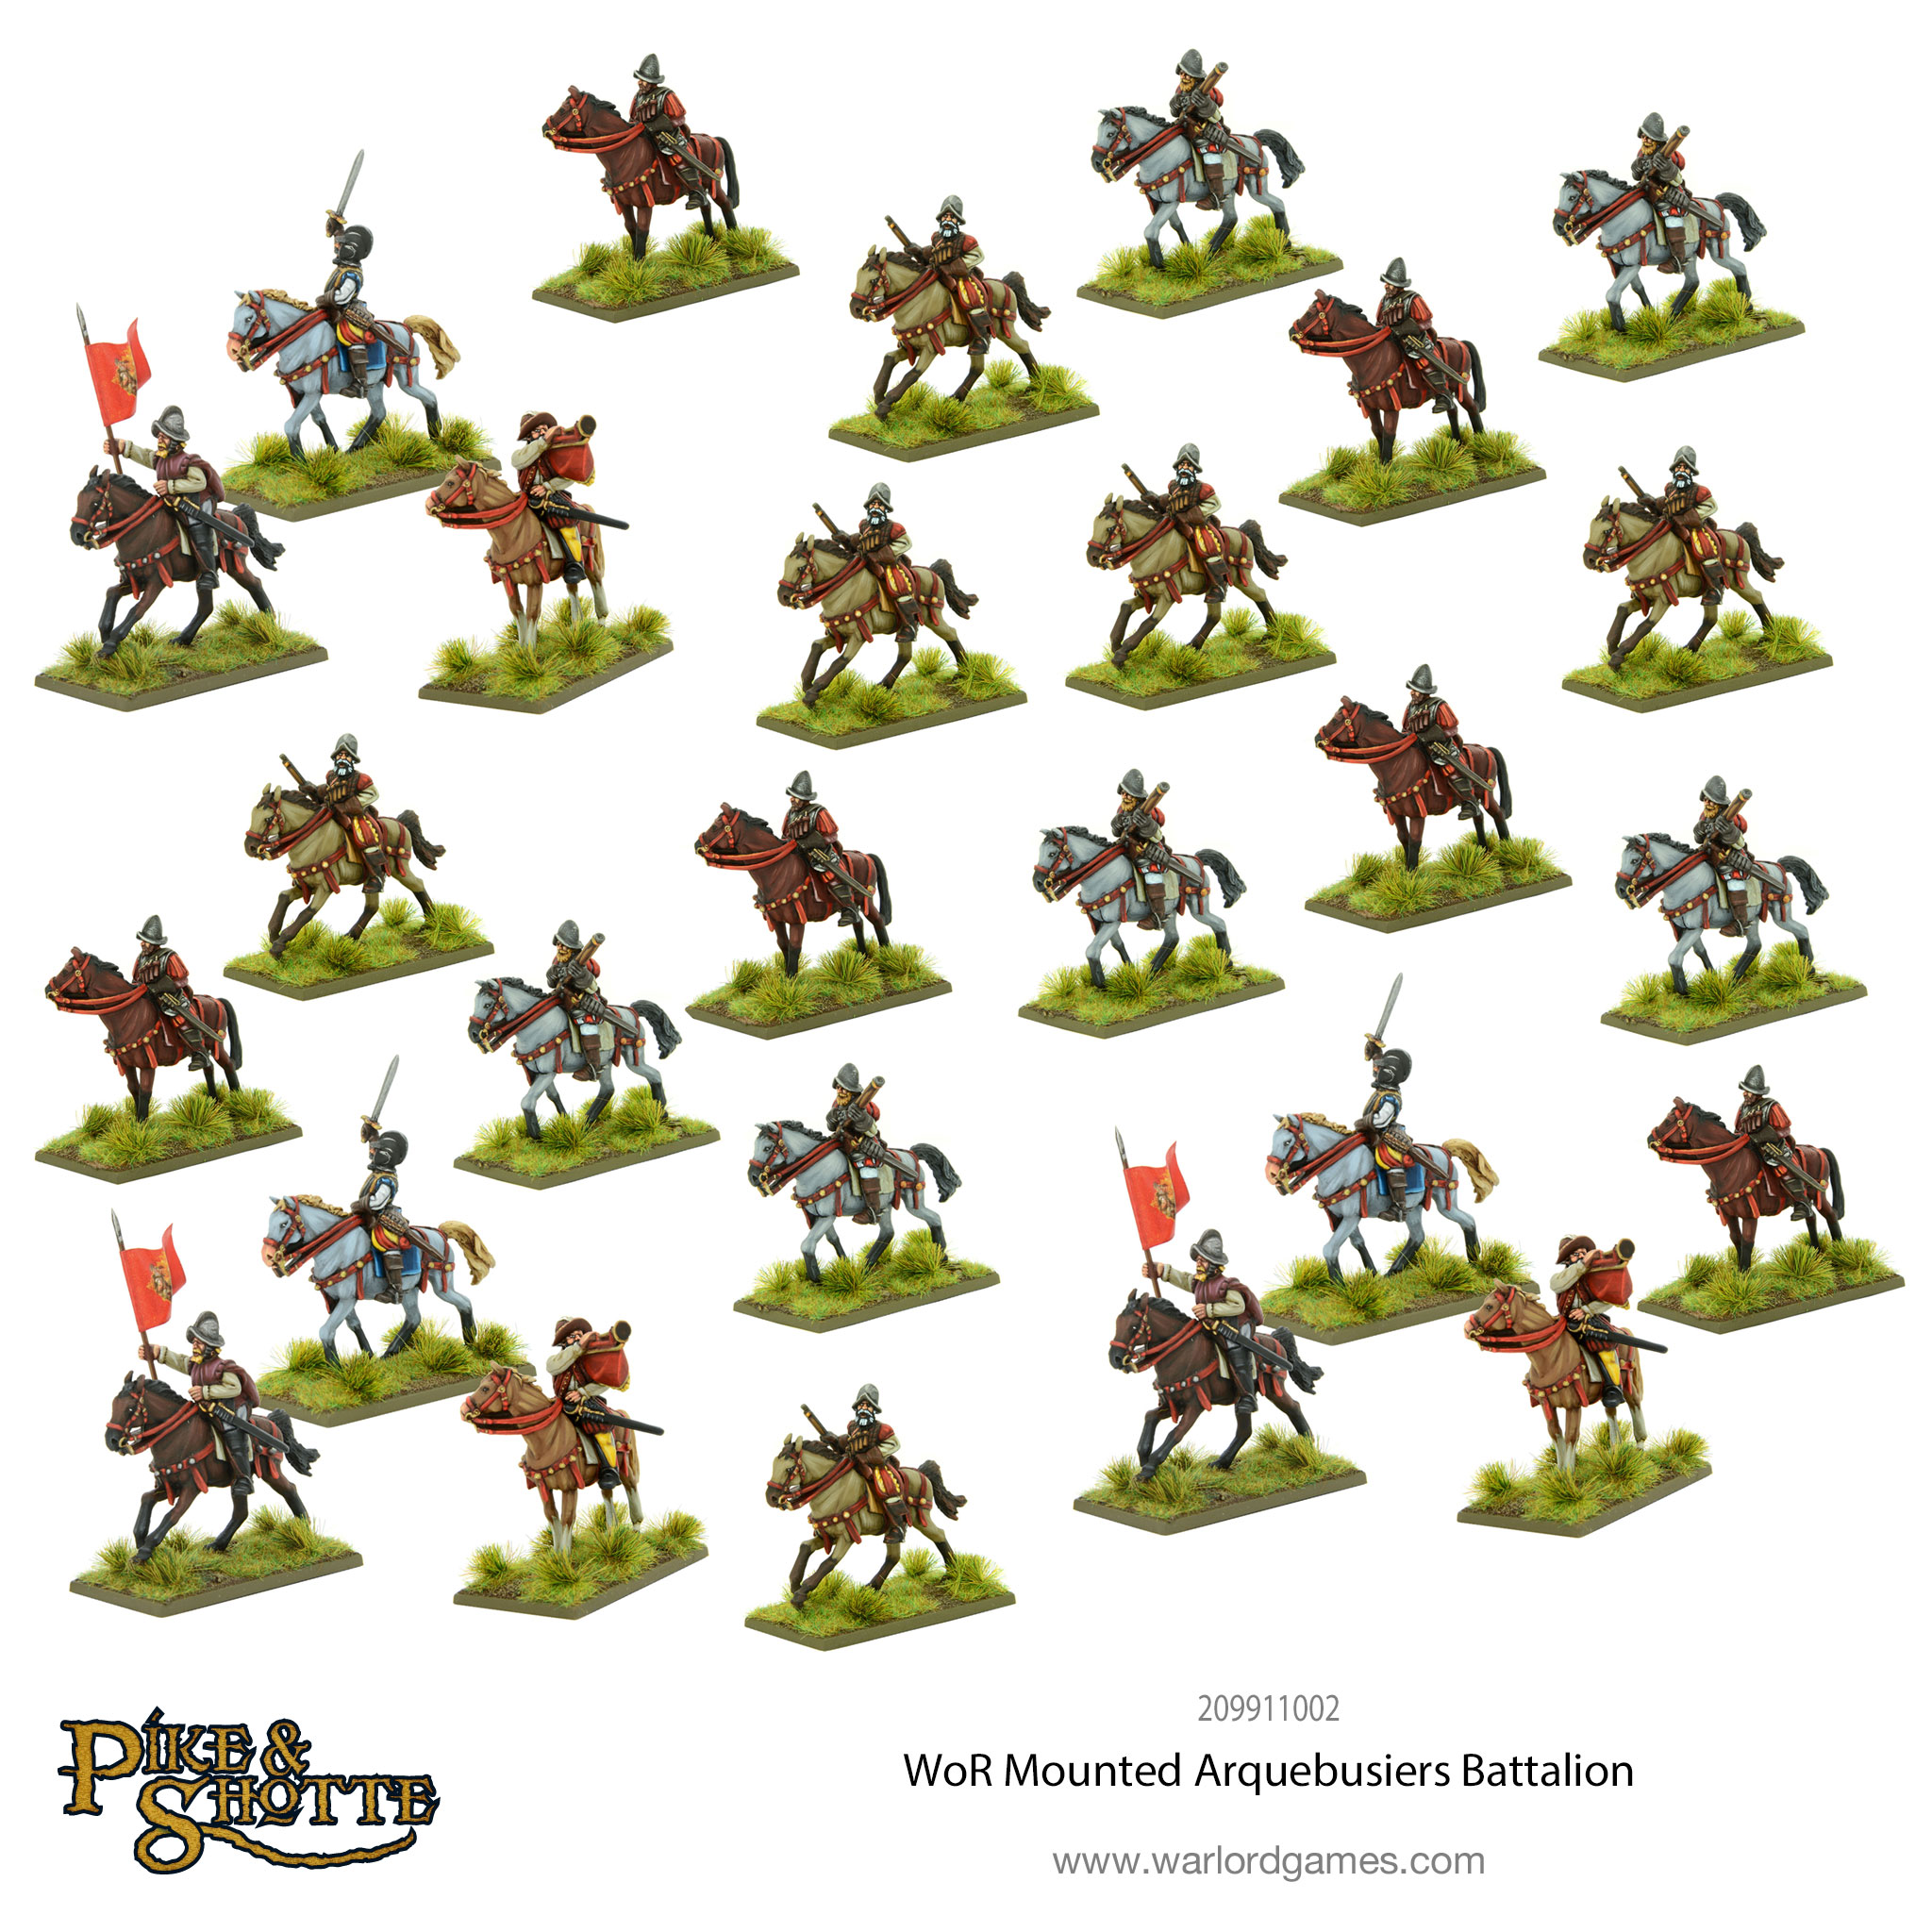 wars of religion mounted arquebusiers battalion